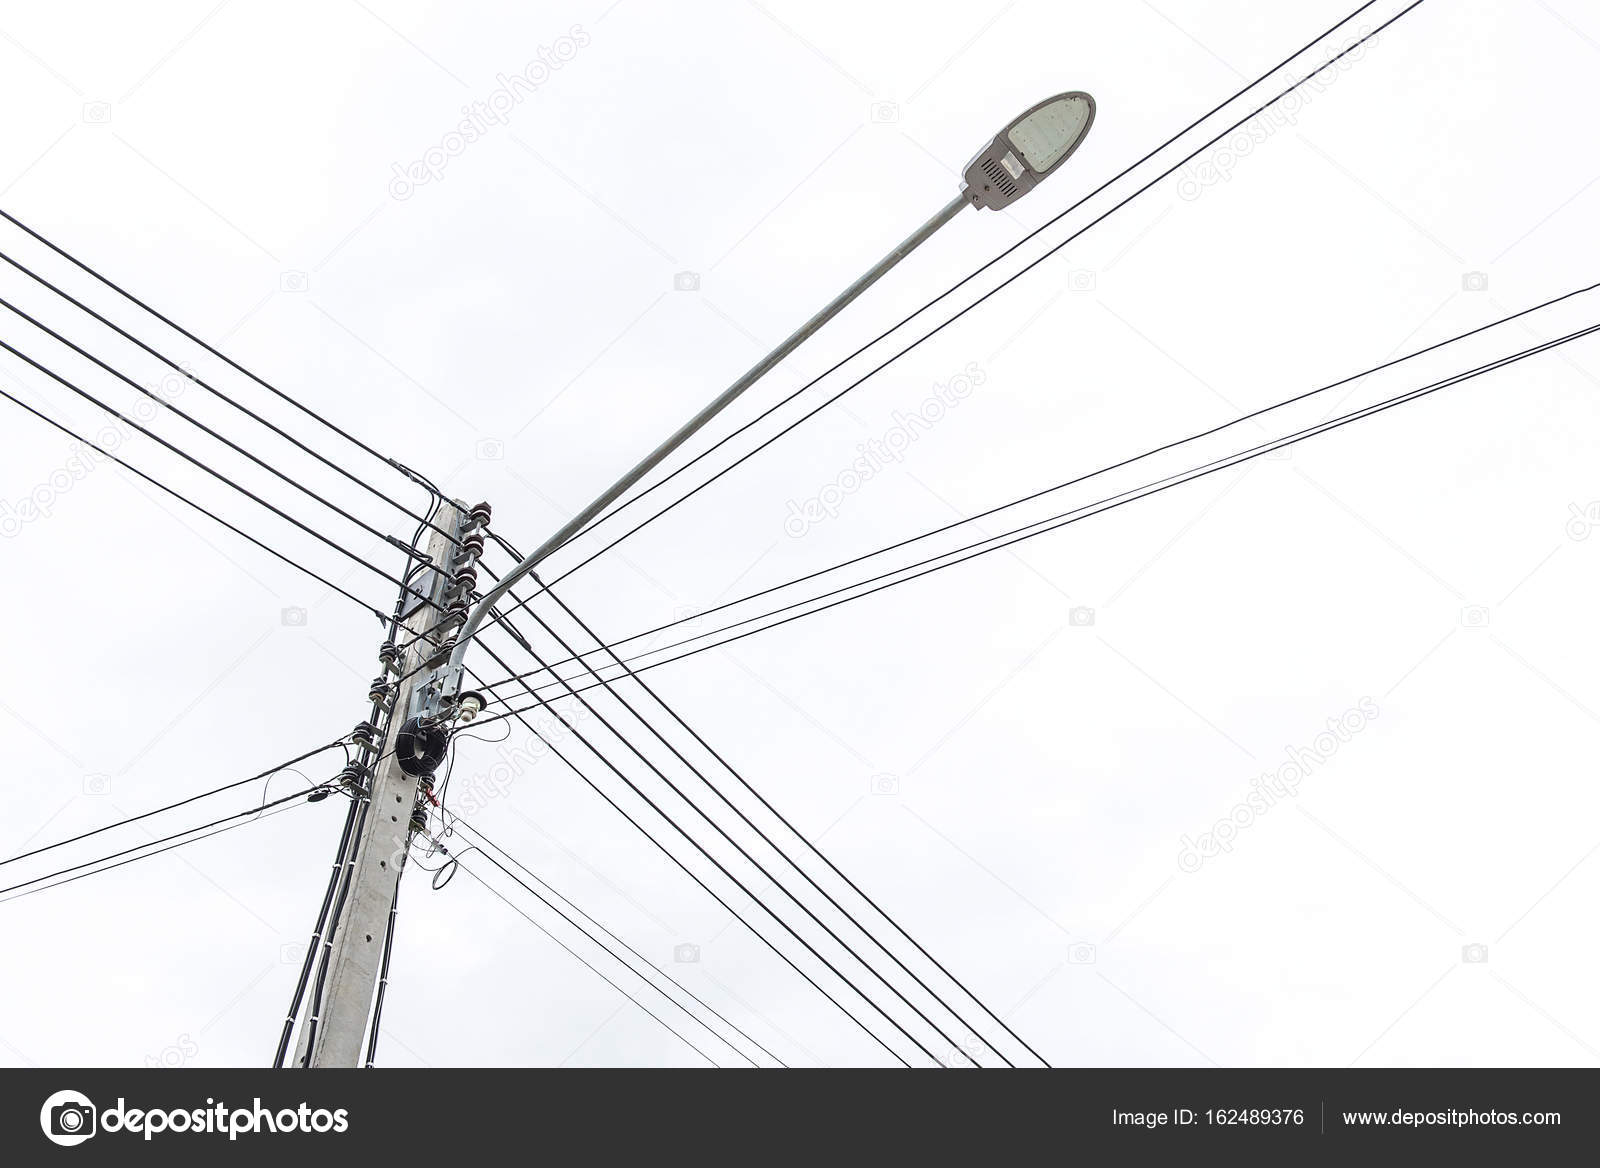 hight resolution of lamp post and electric pole connect to the high voltage electric wires stock photo